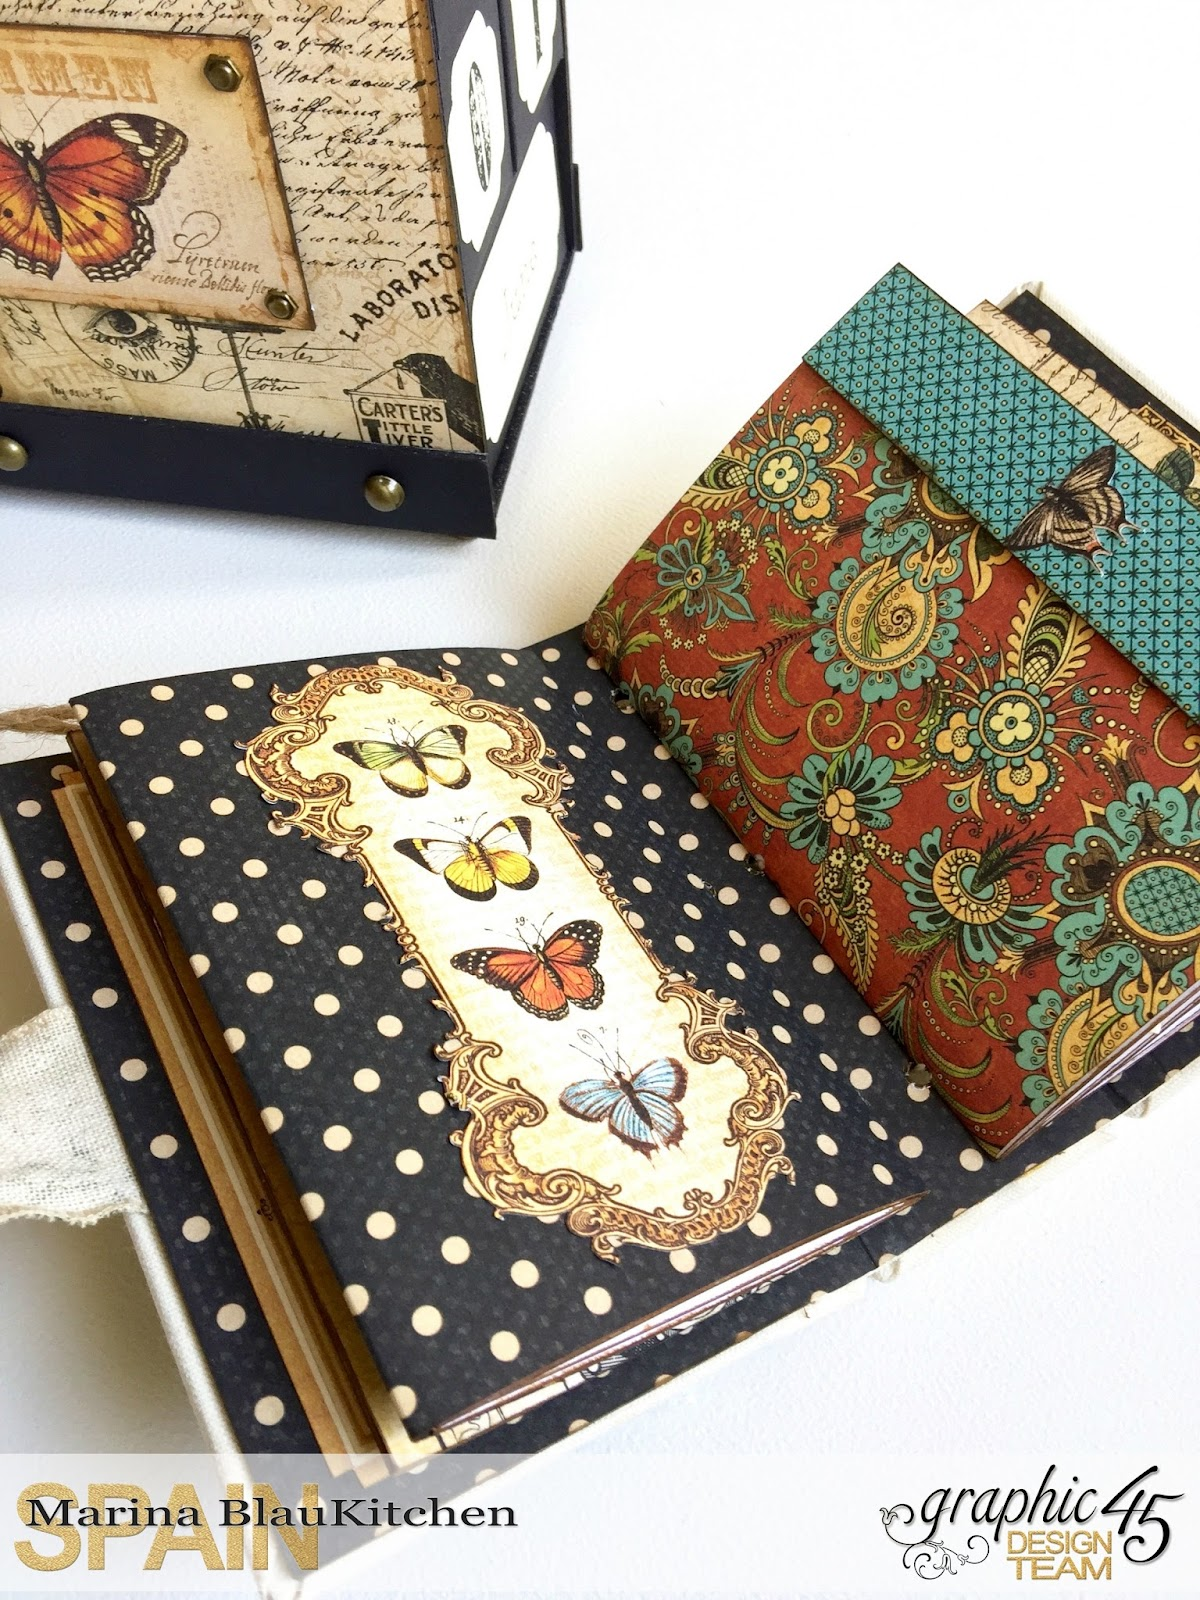 Album Binding Olde Curiosity Shoppe Tutorial by Marina Blaukitchen Product by Graphic 45 photo 11.jpg